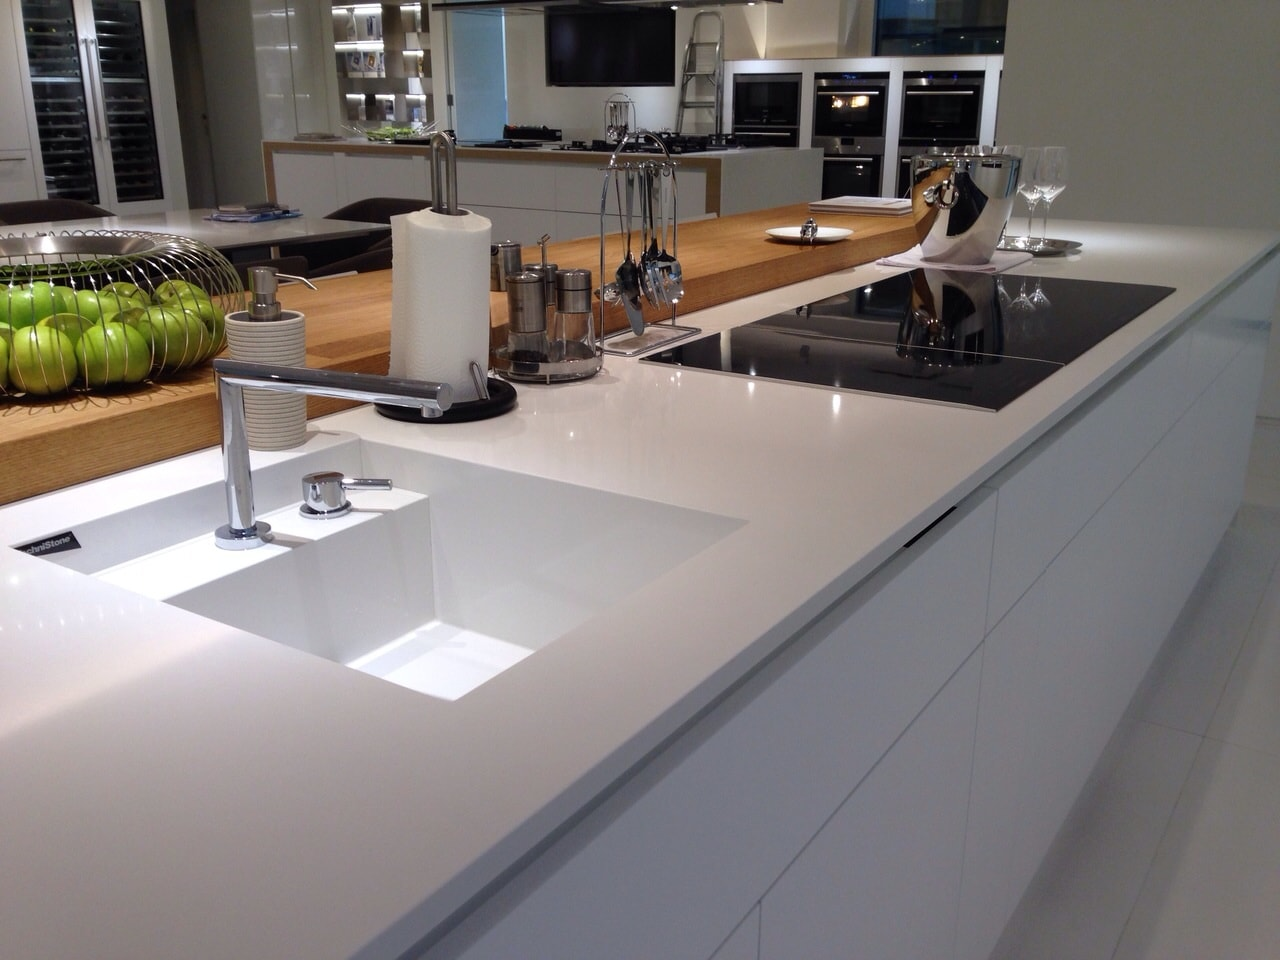 Ultramodern design of the kitchen with two zones and different countertops with direct lighting and mortise sink